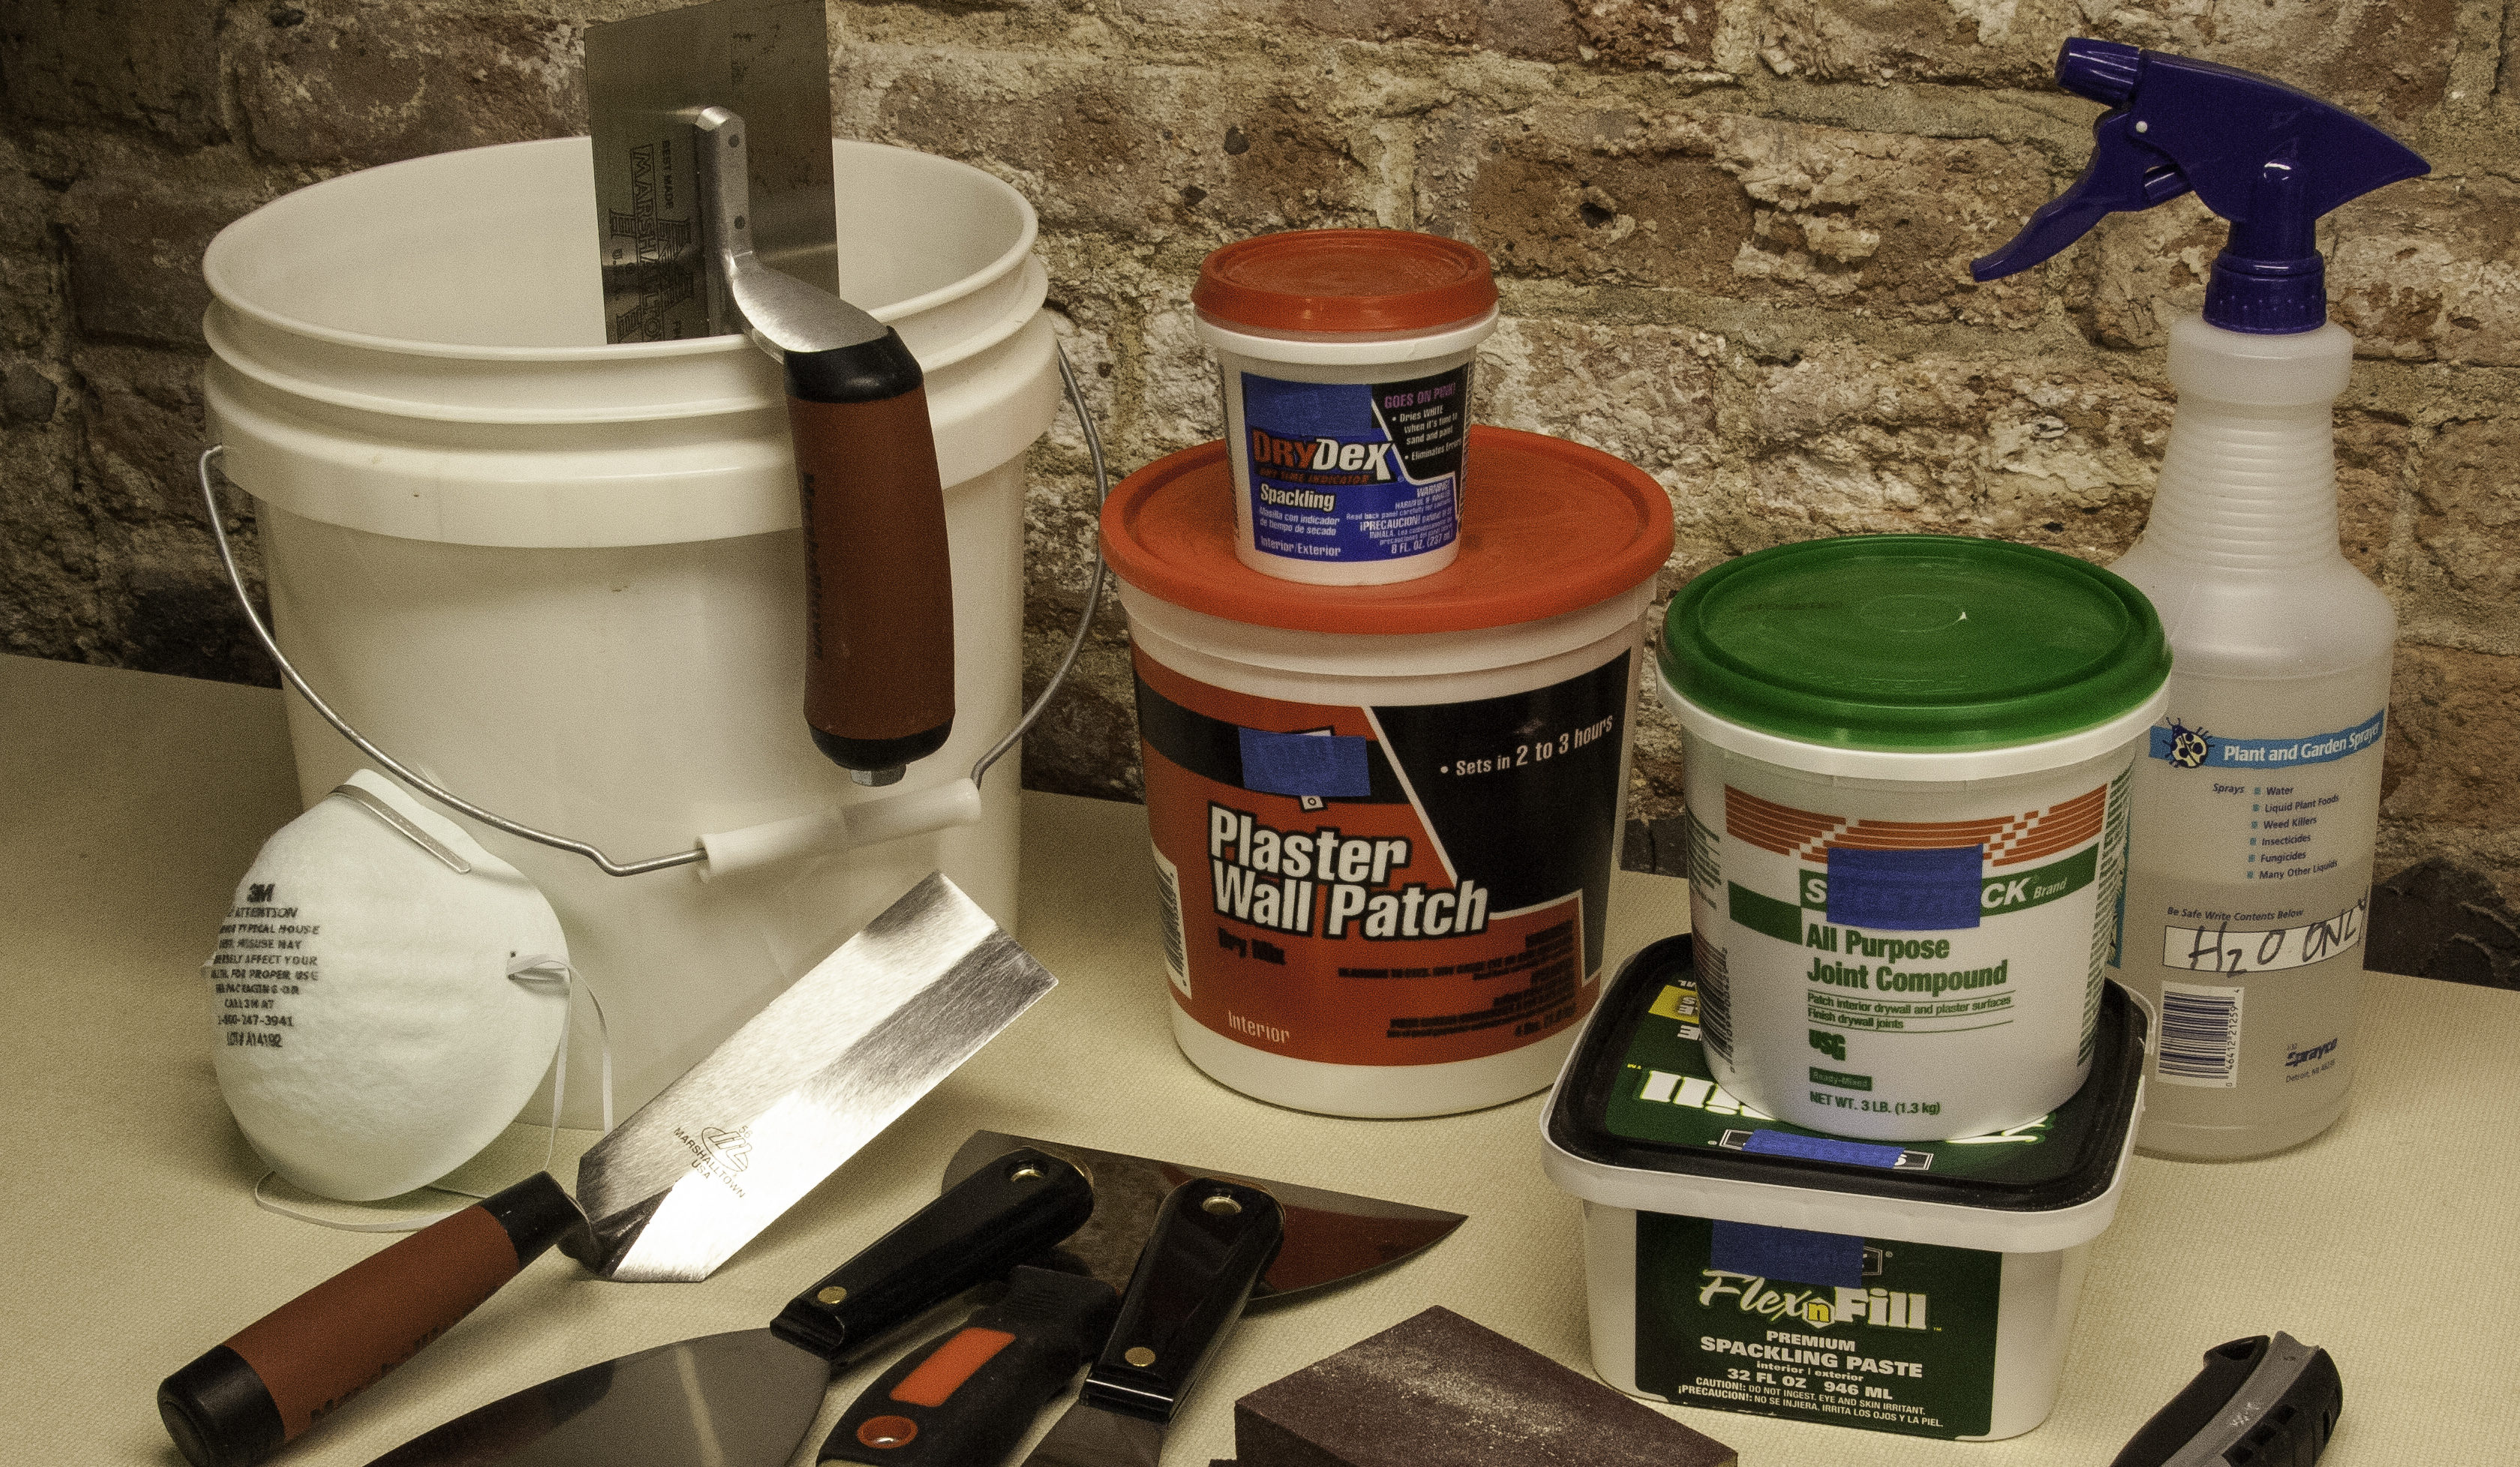 Drywall and plaster tools